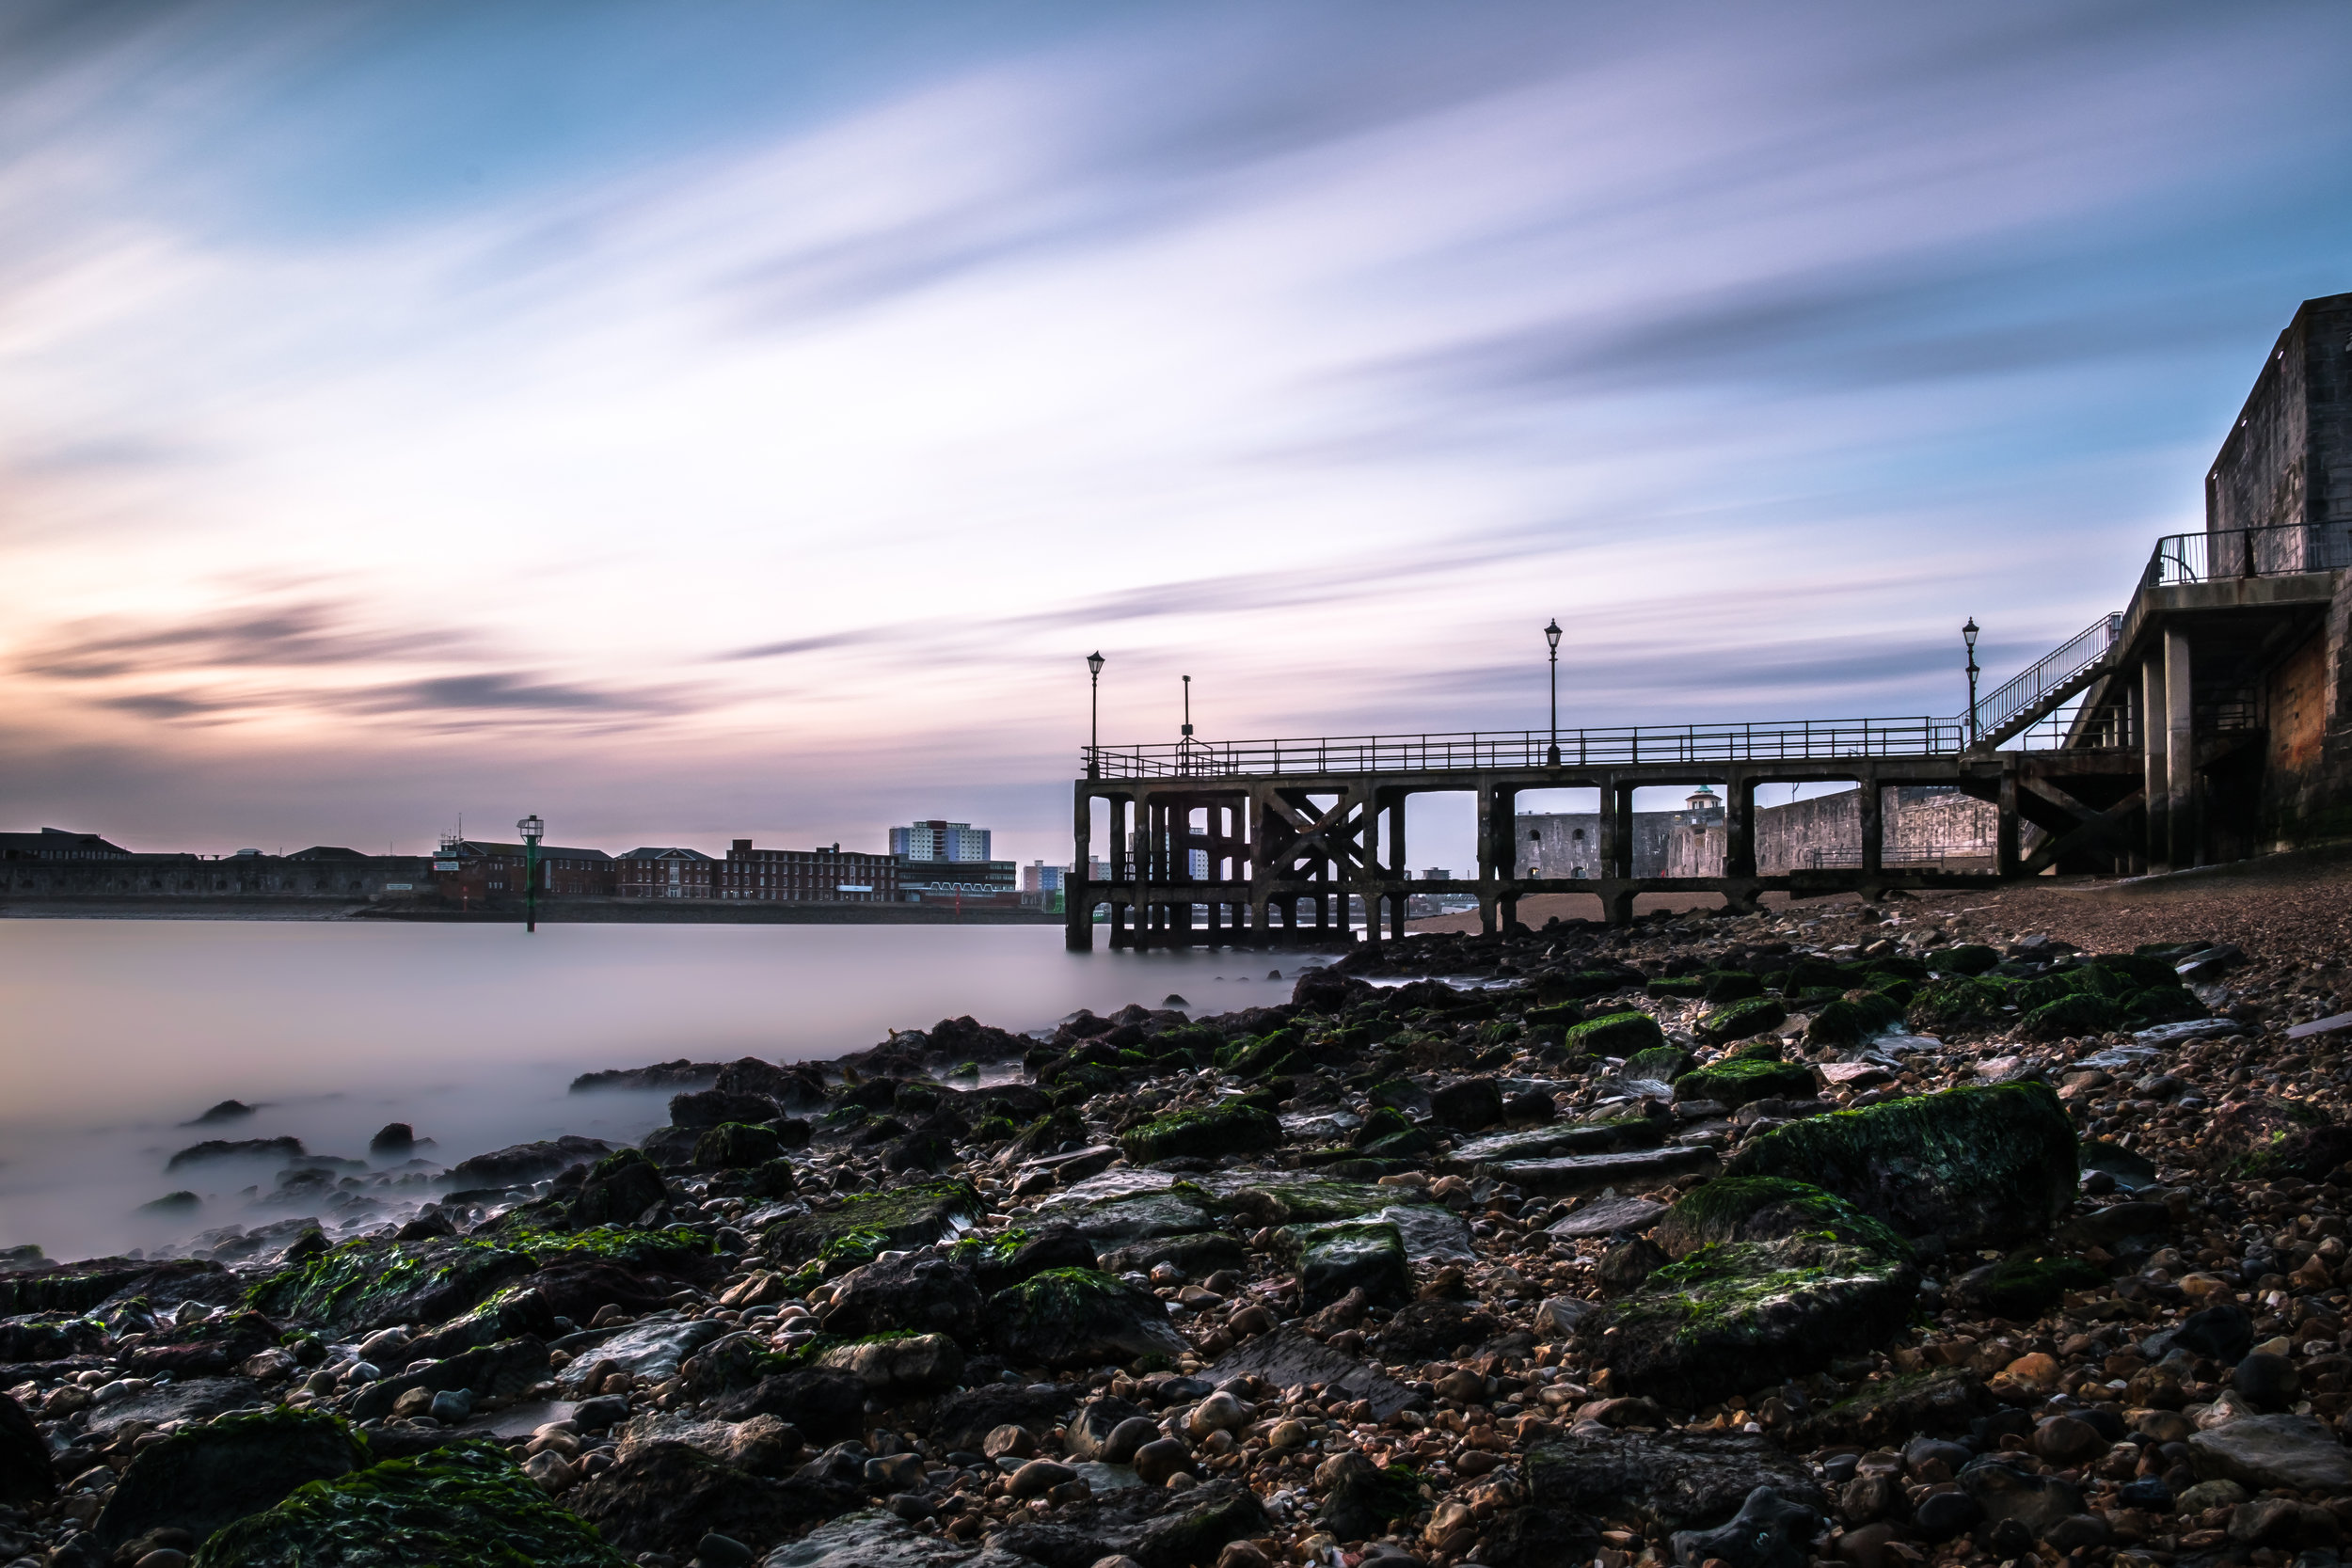 A Pier Behind the Rocks - Portsmouth, UK